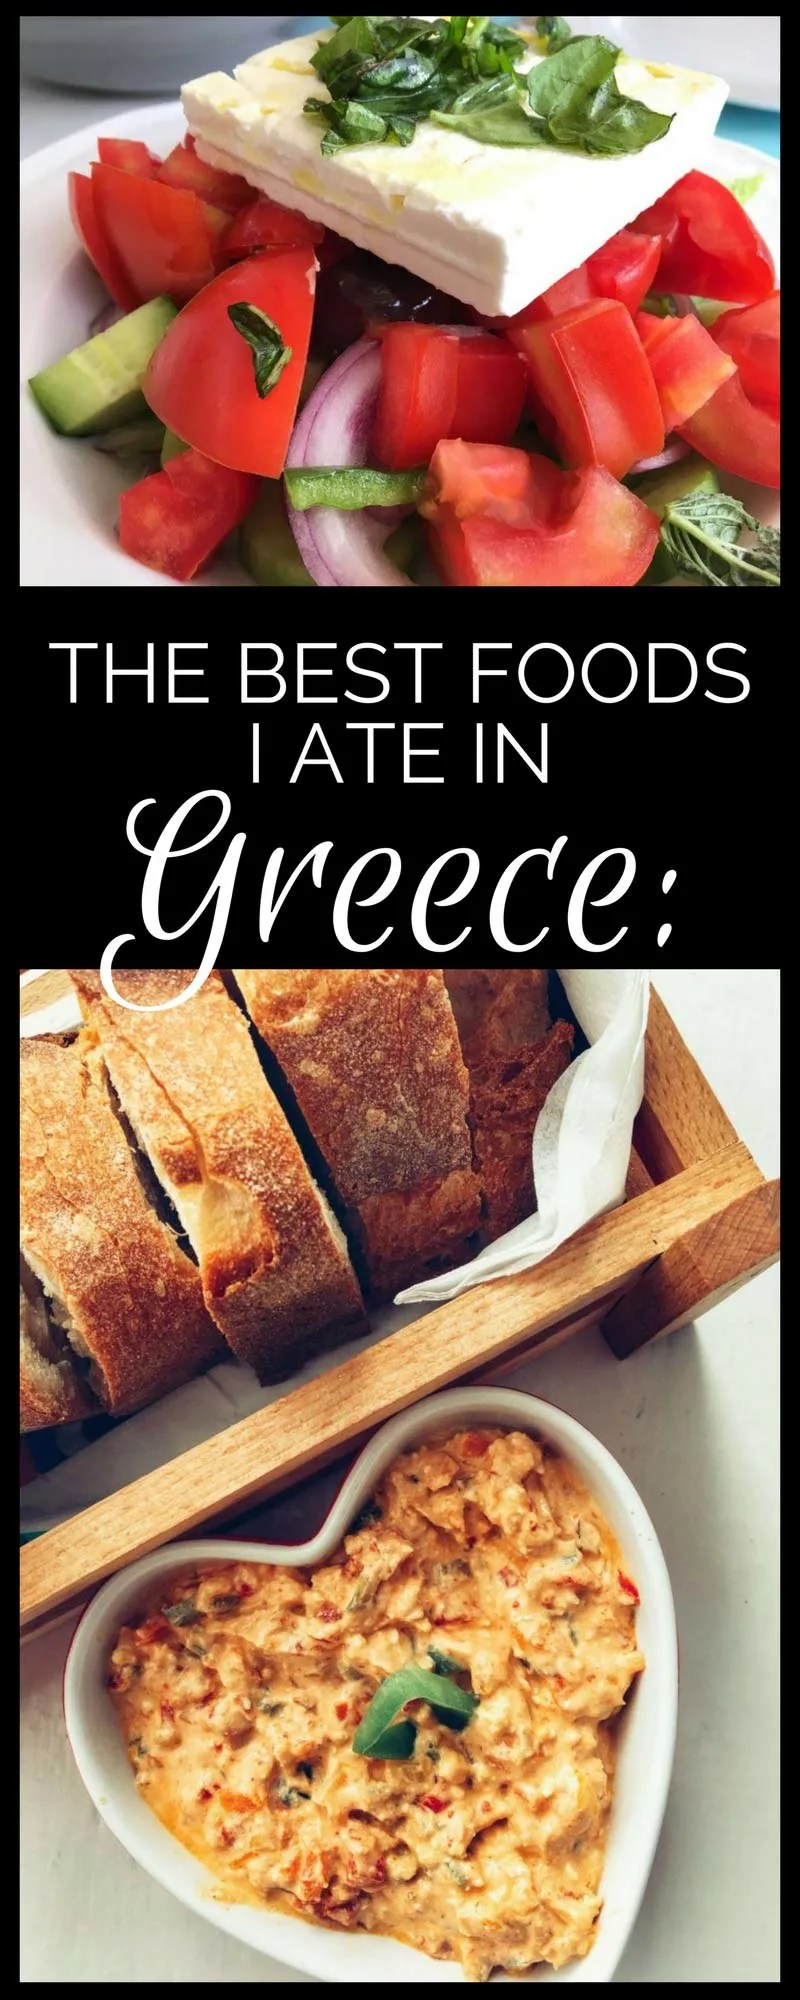 There is huge variety in Greek food. The majority of Greek dishes I tried were simple and made use of what's in season, but they were all done perfectly. The Greek diet is full of seafood, grilled meats, cheese, fresh vegetables, olive oil and savory pastries. In fact,Greece is considered to have one of the healthiest diets in the world.